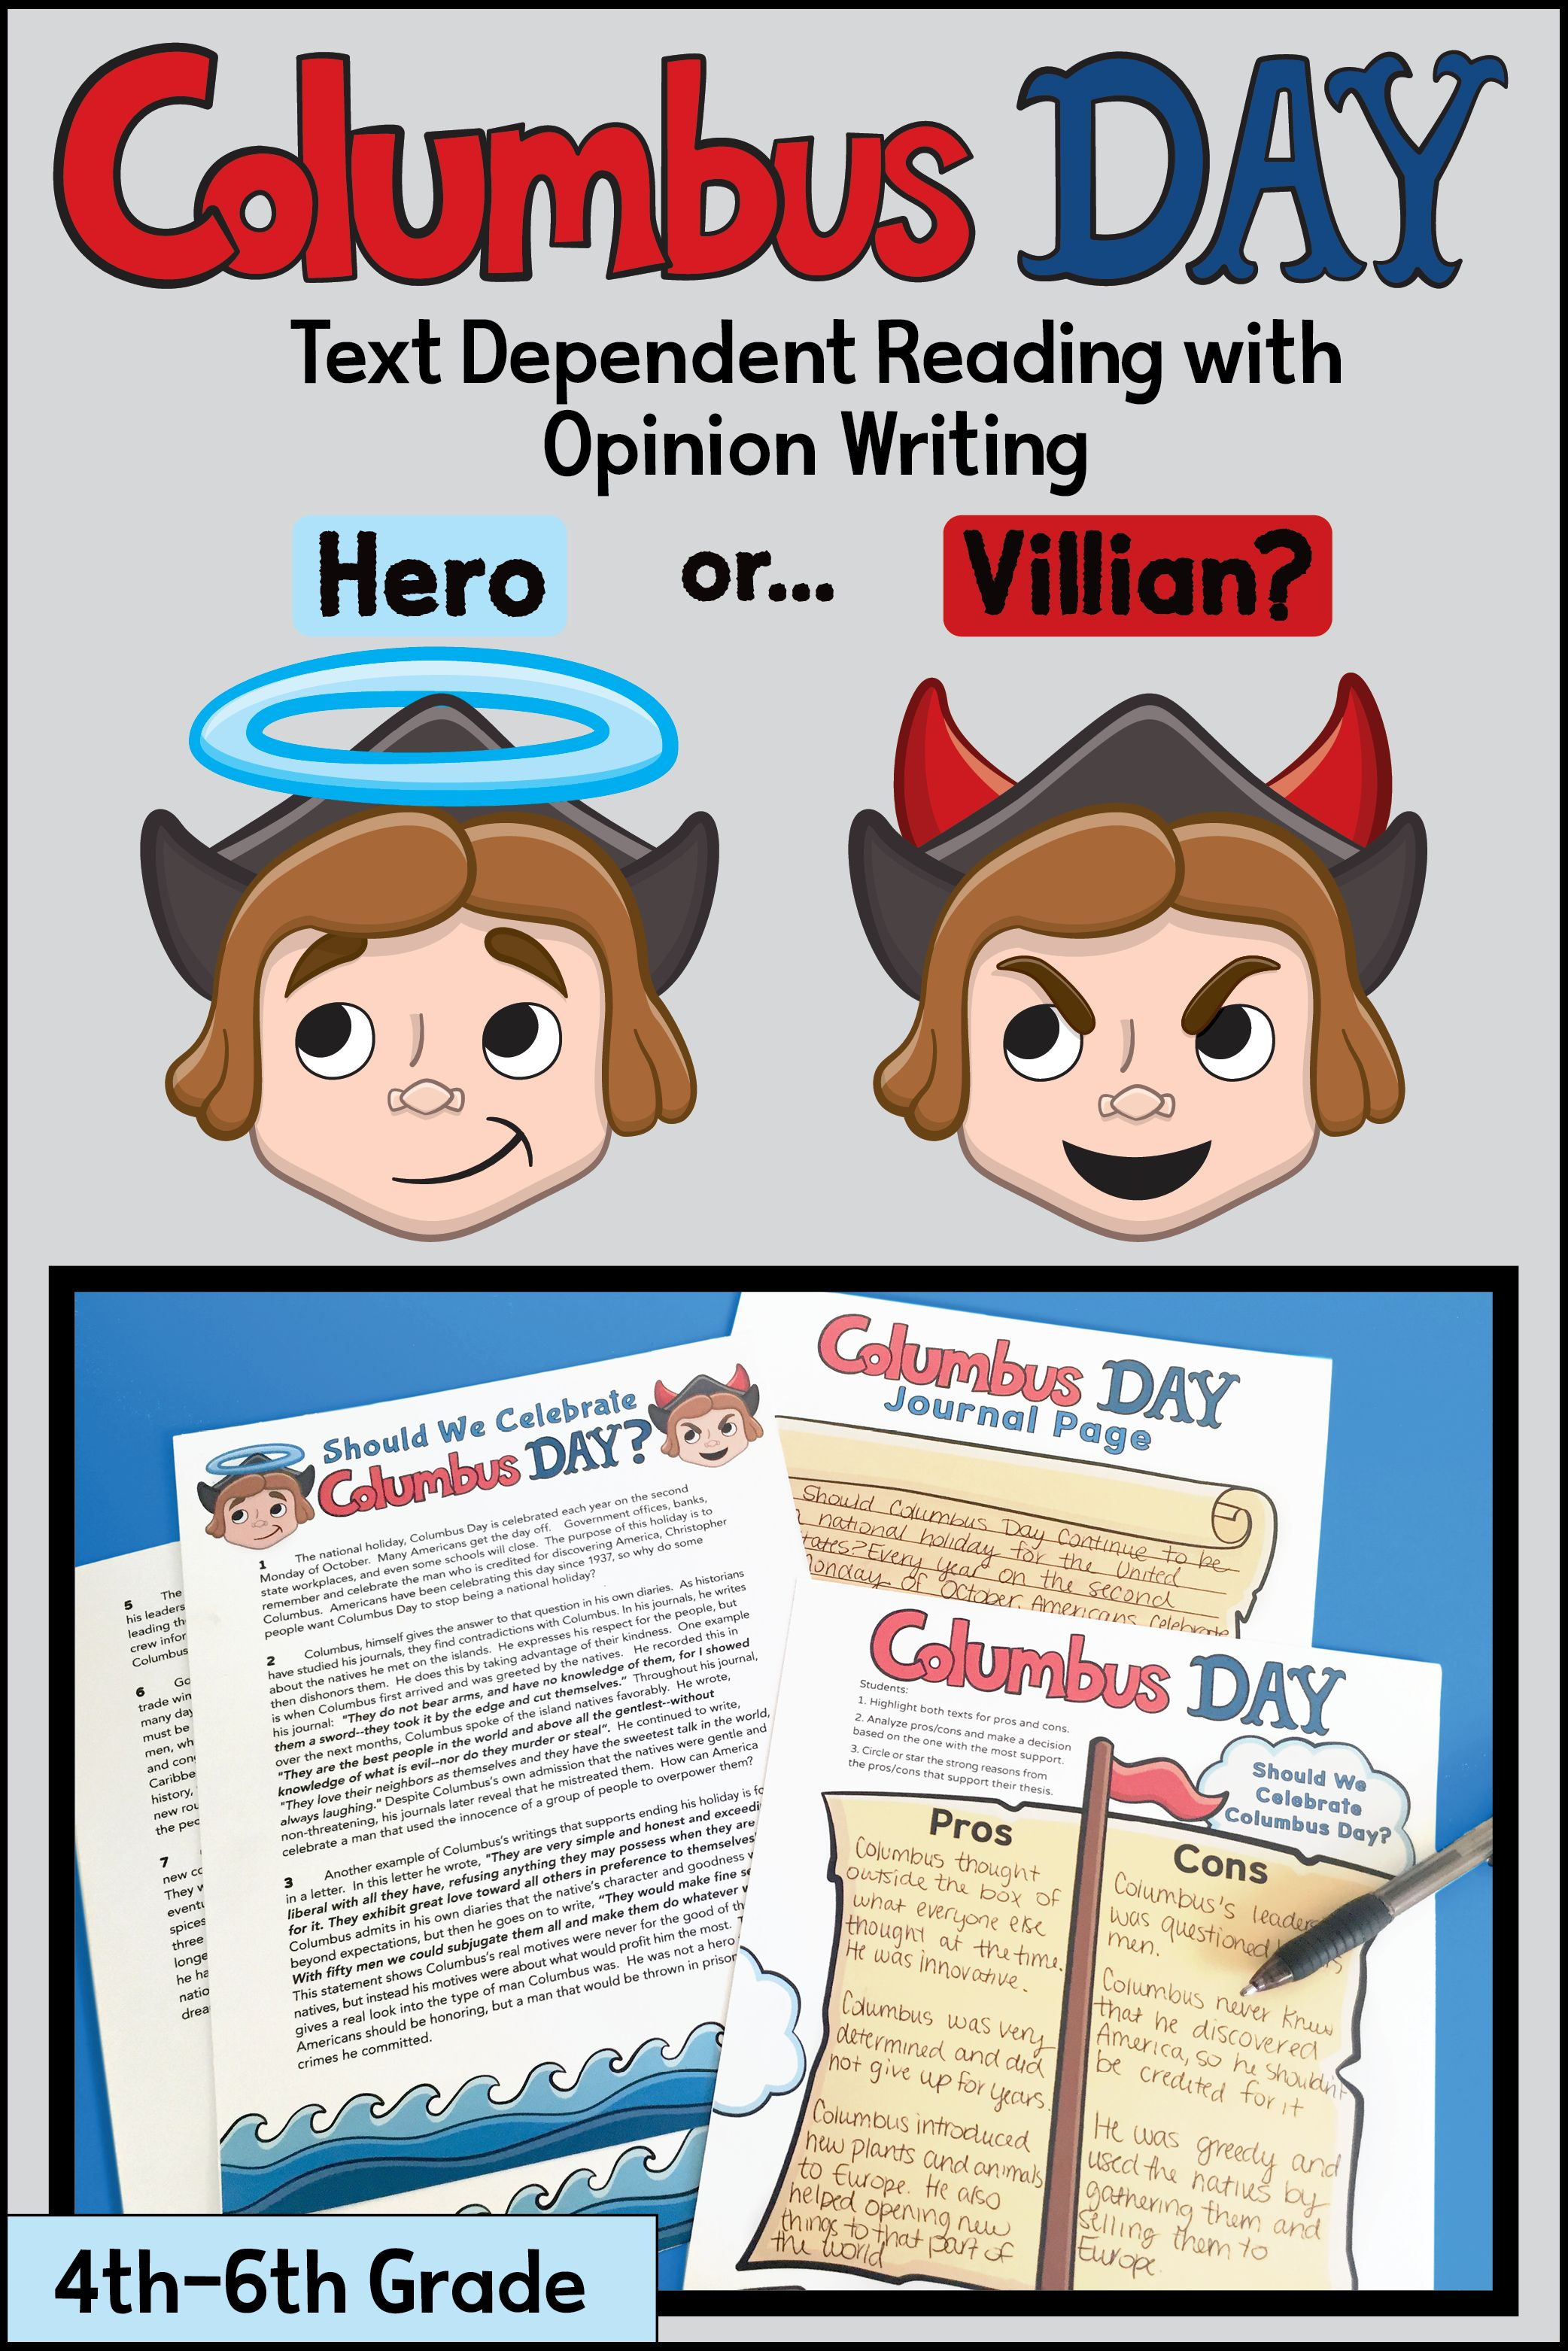 Christopher Columbus Worksheet 5th Grade   Printable Worksheets and  Activities for Teachers [ 3125 x 2084 Pixel ]